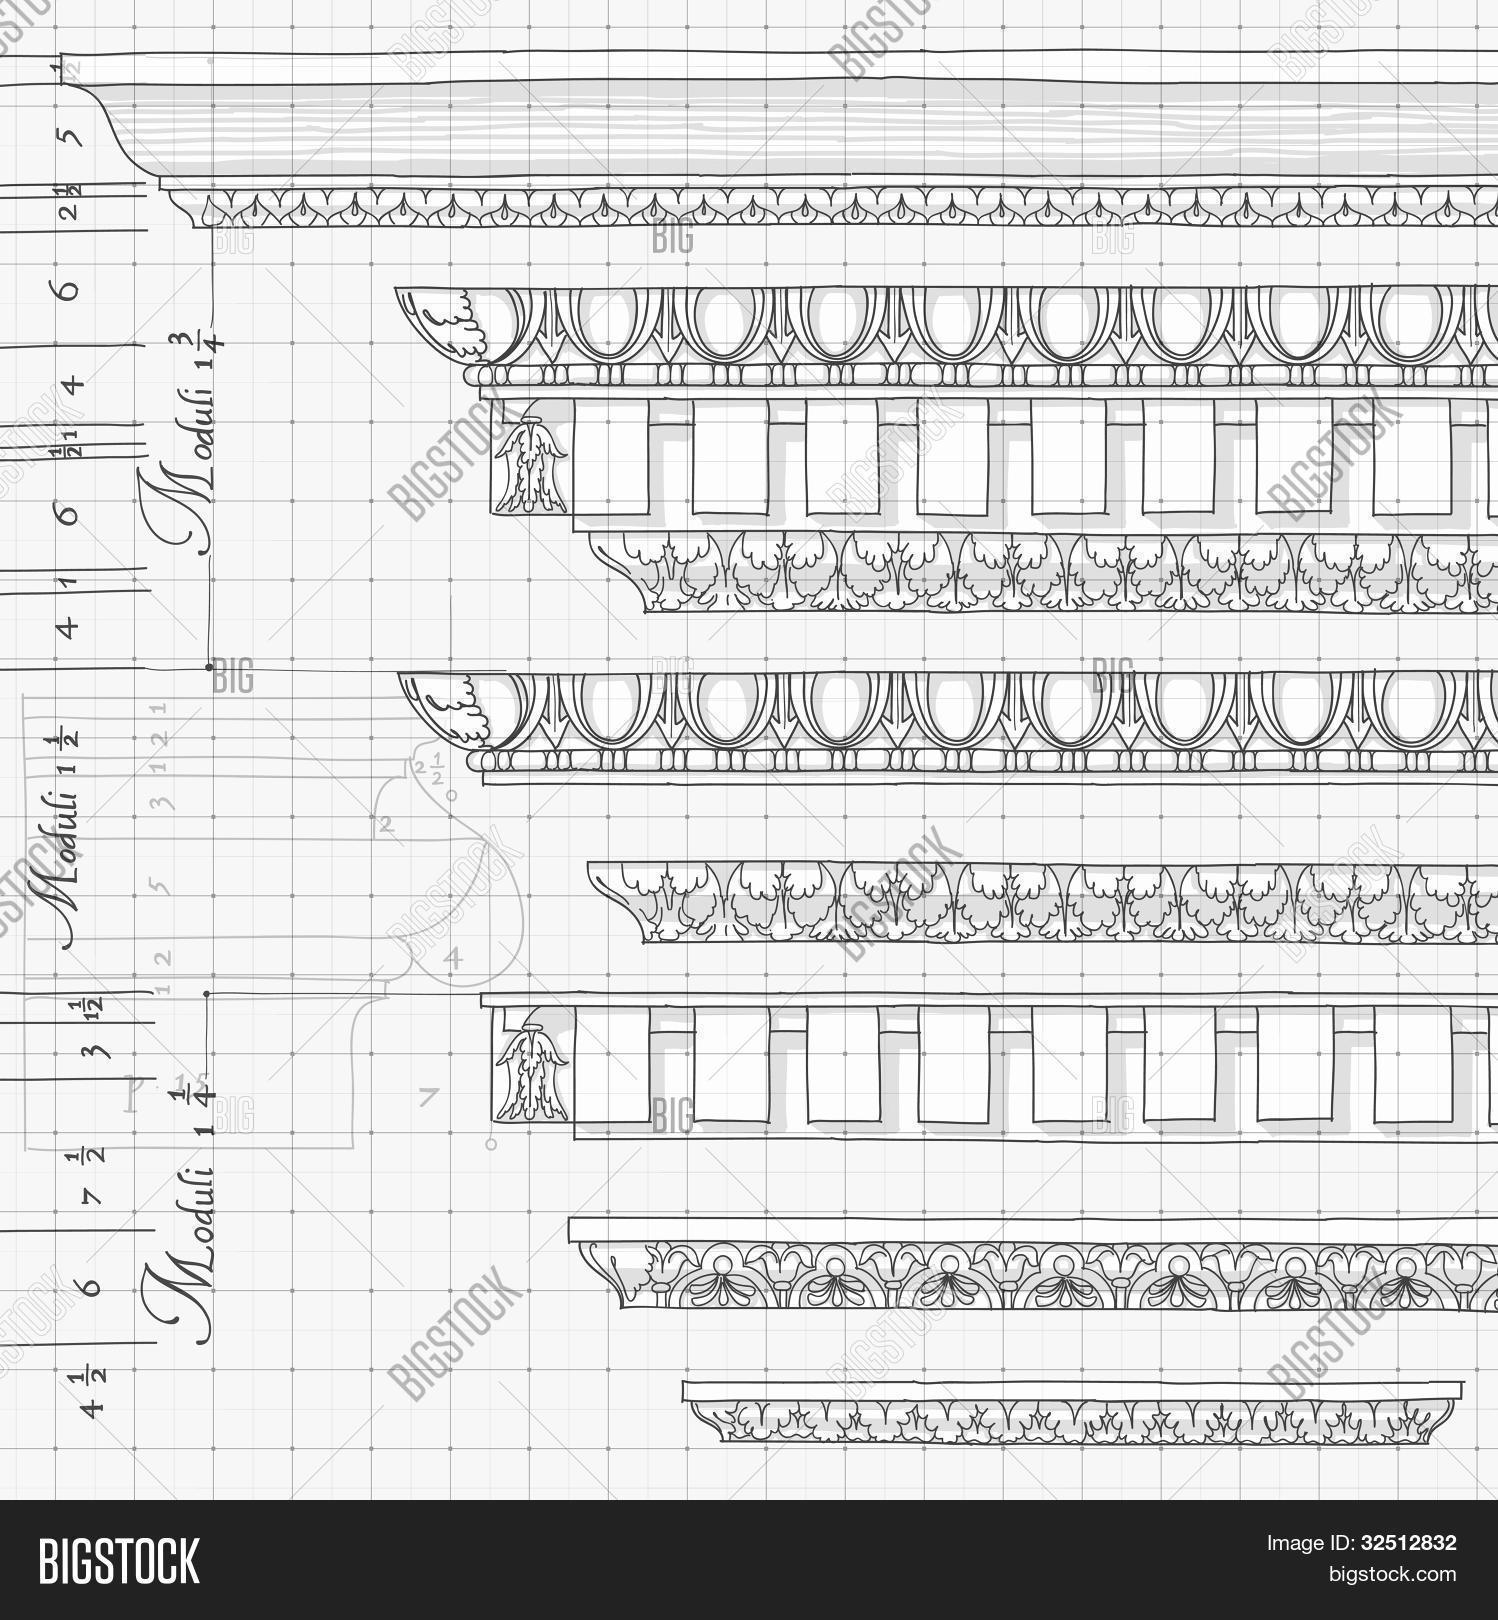 Blueprint vintage image photo free trial bigstock blueprint vintage ornaments hand draw sketch based the five orders of architecture create a lightbox malvernweather Image collections